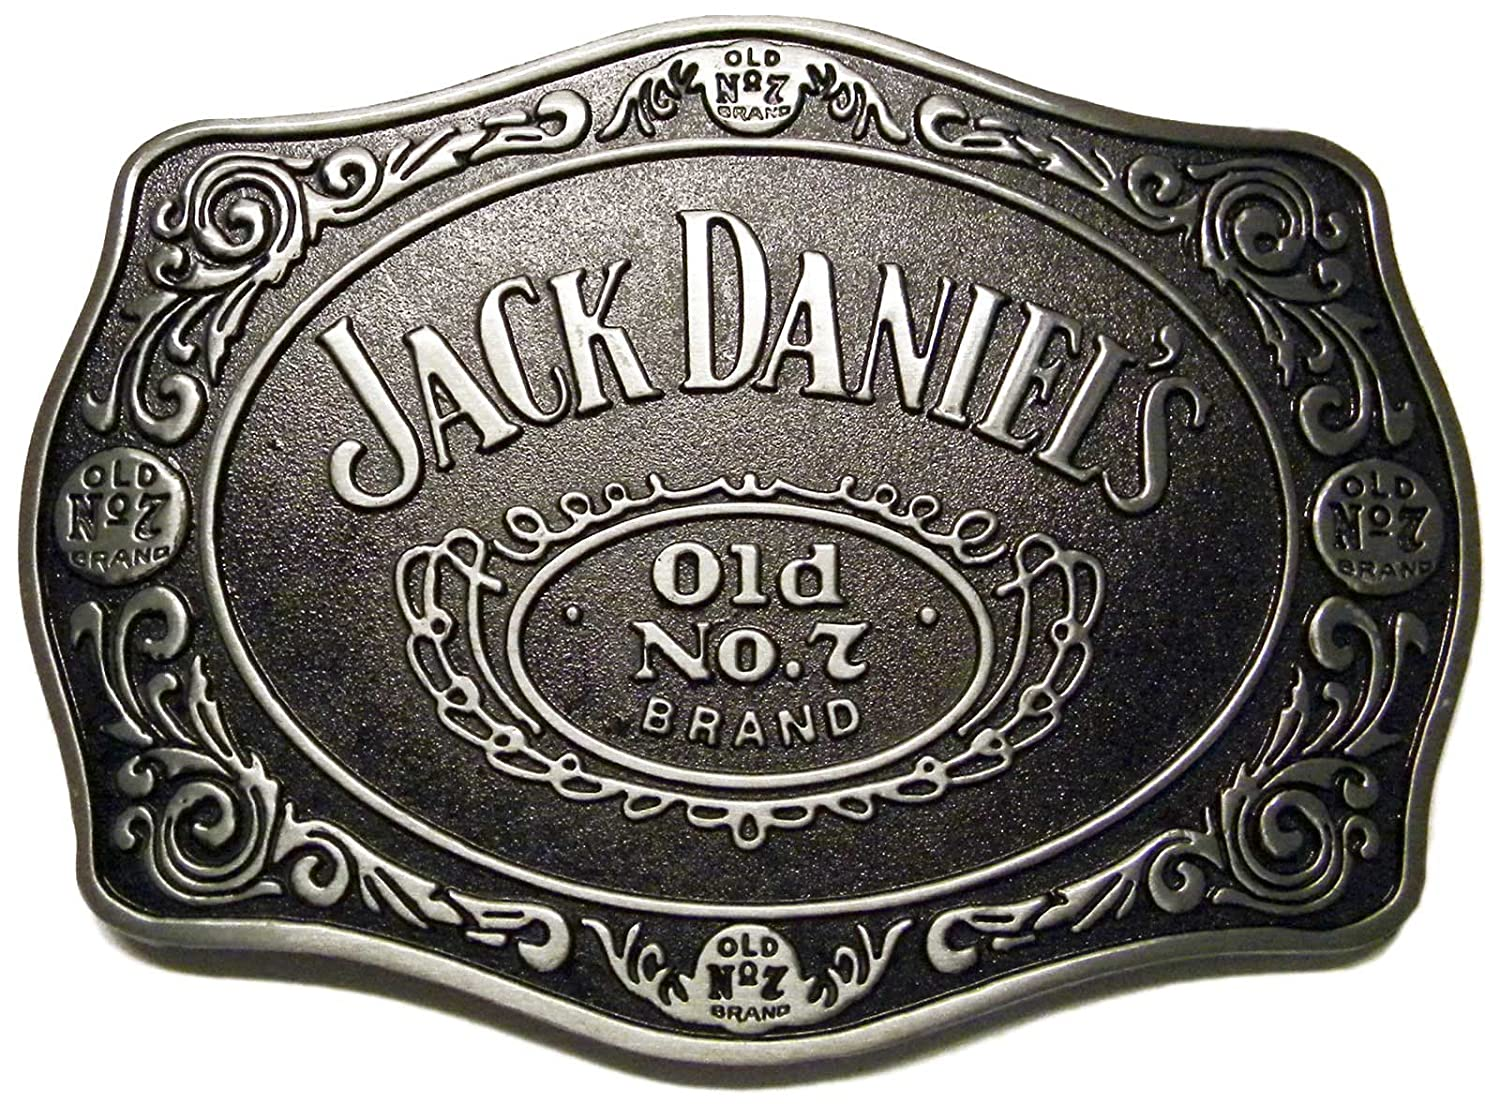 Jack Daniels Old No. 7 Brand Metal Belt Buckle